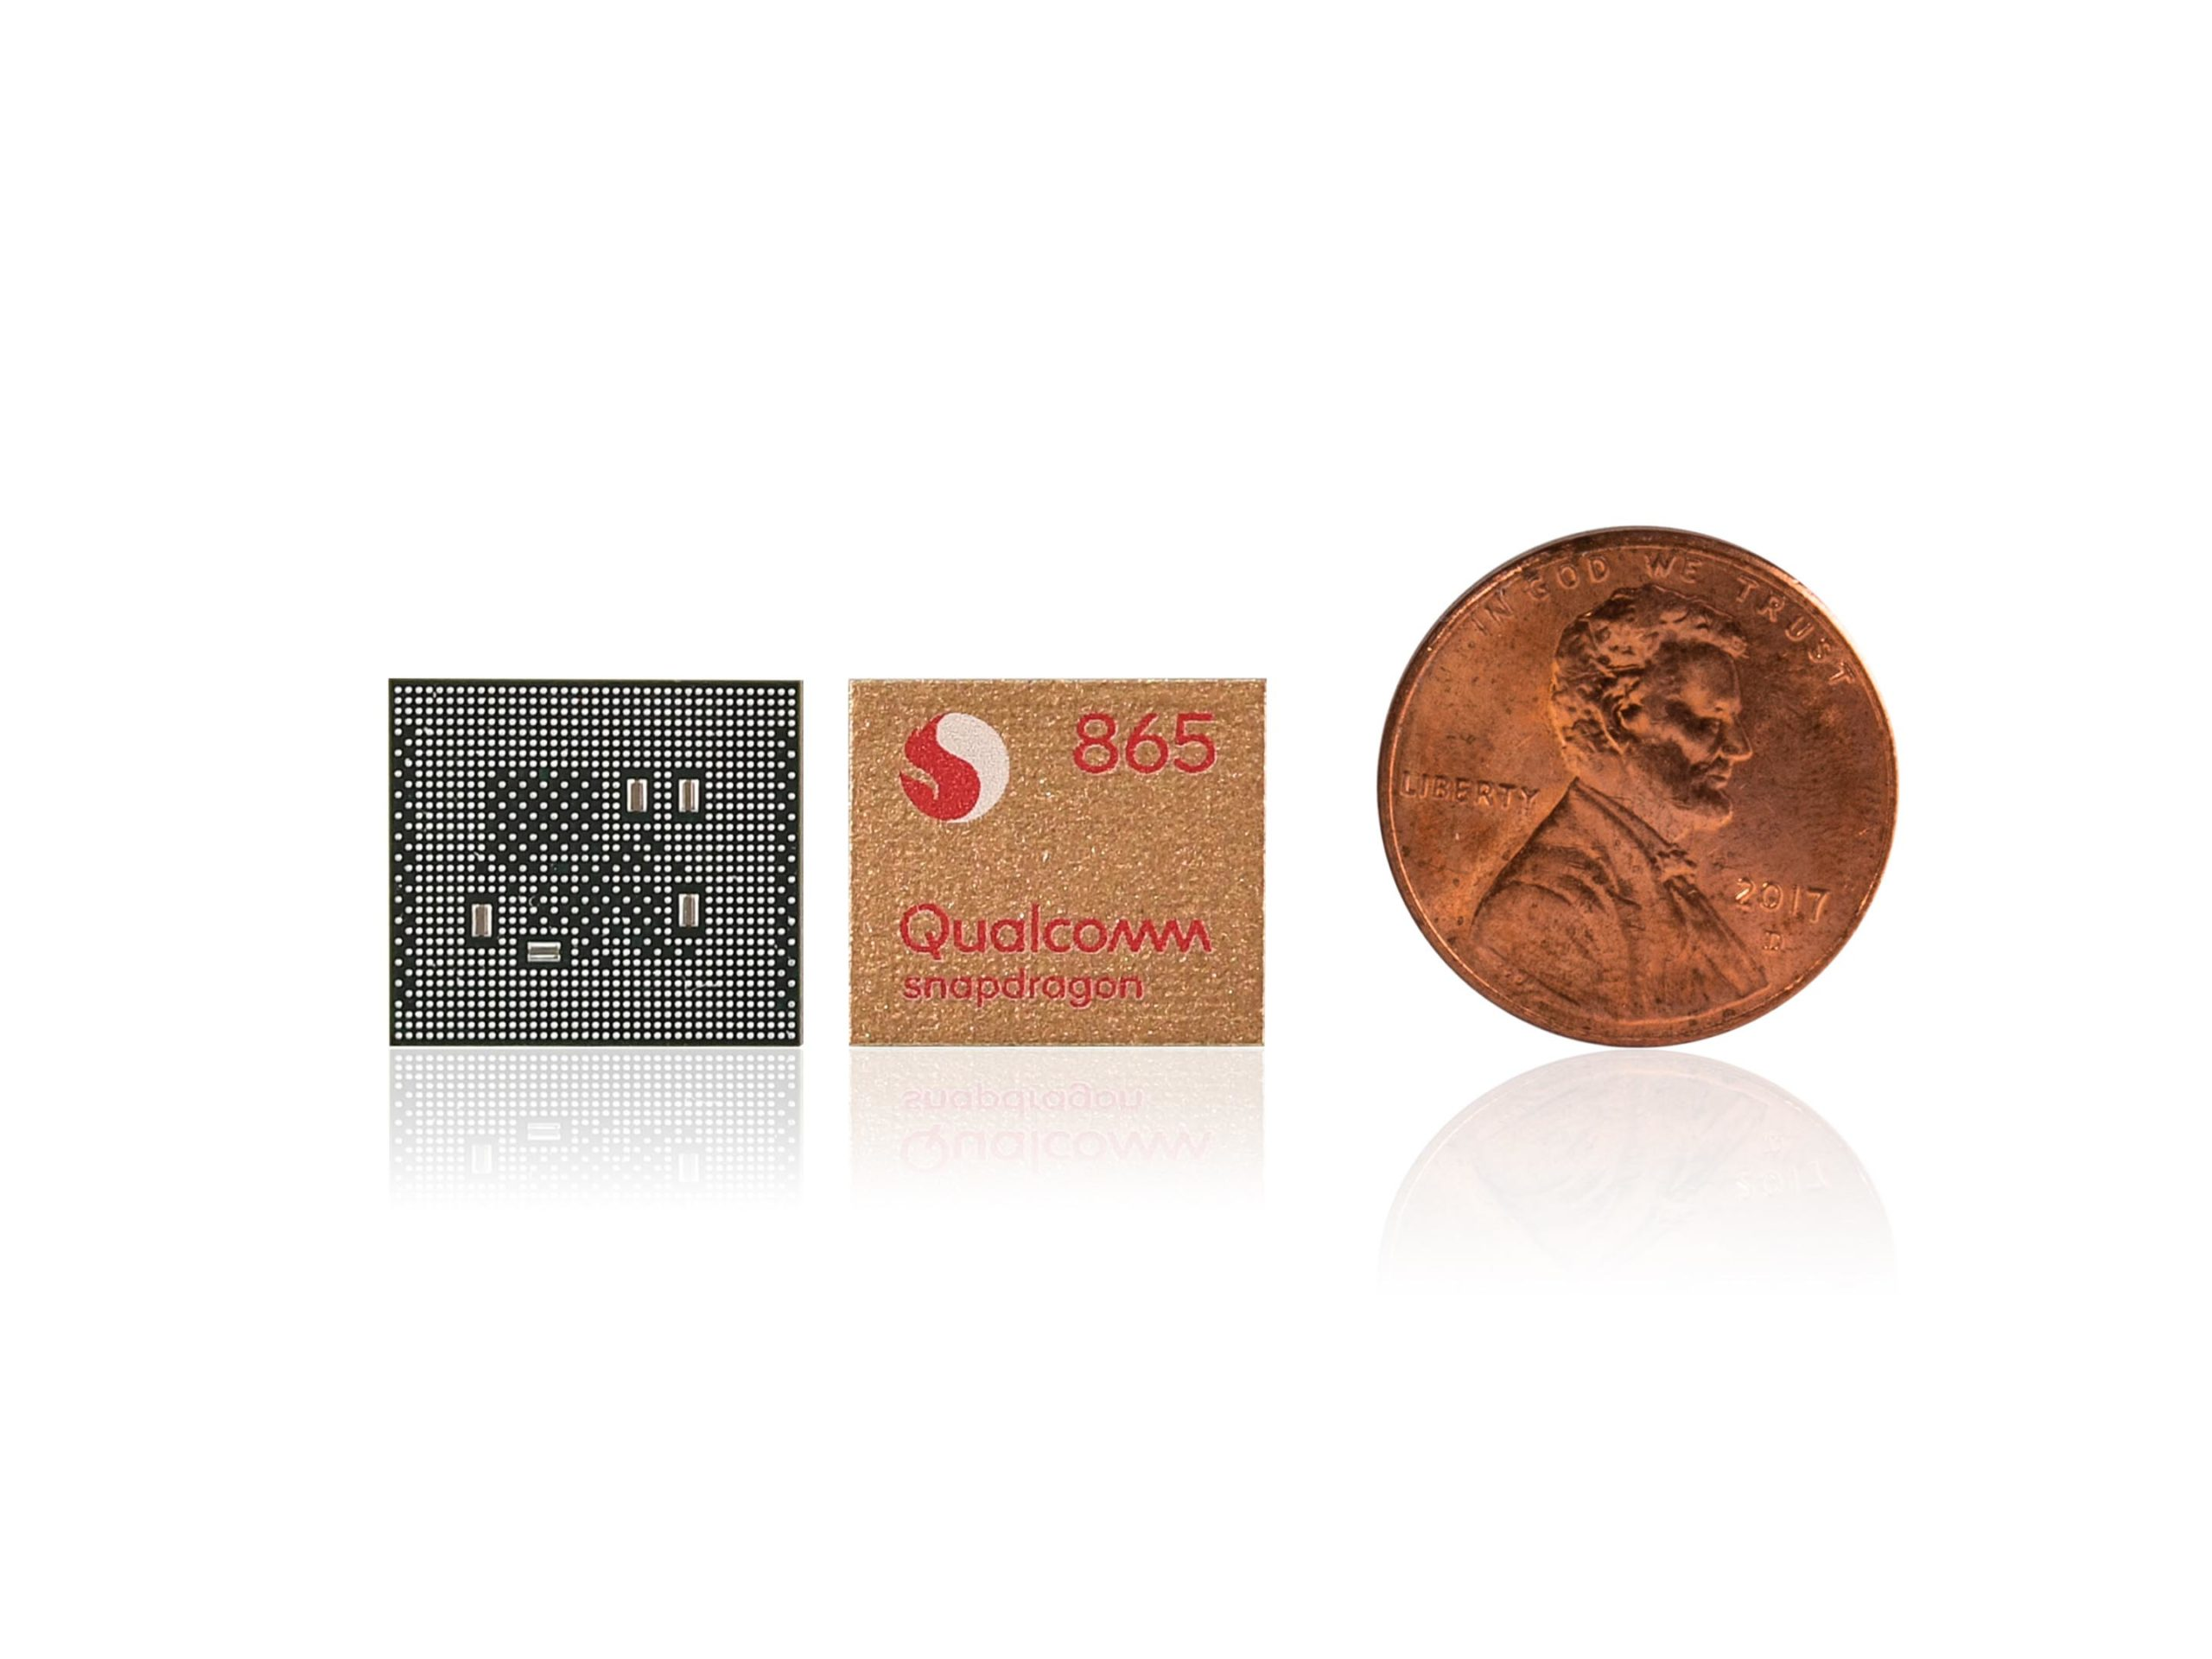 Snapdragon 865 next to coin